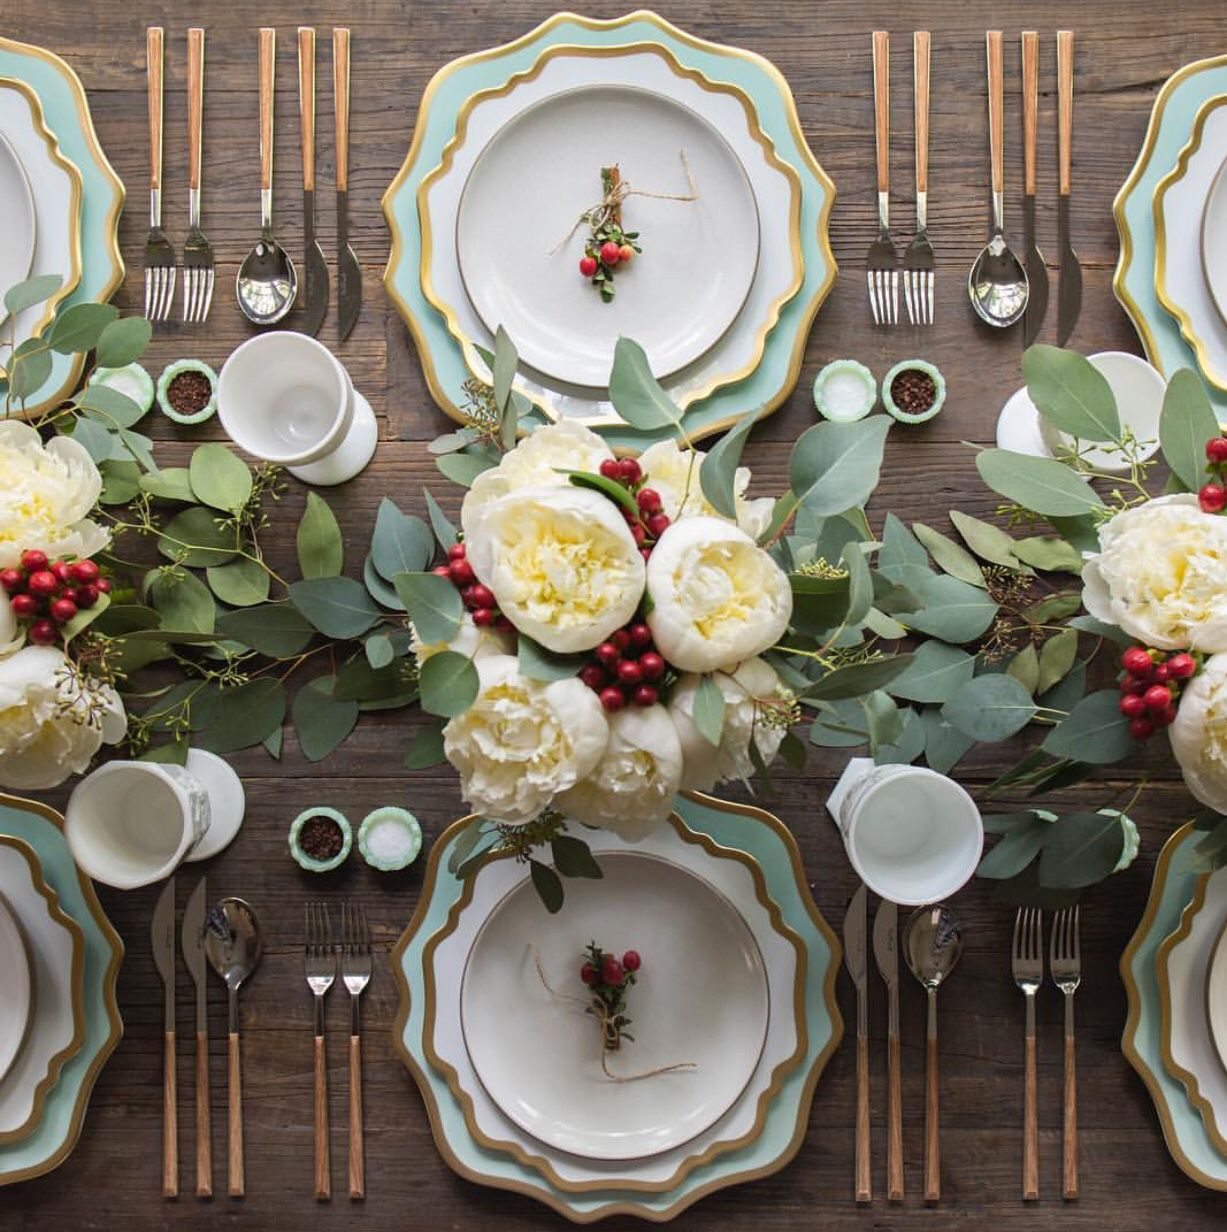 Instagram @casadeperrin & 25 Elegant Christmas Table Settings - Holiday Table Ideas \u0026 Centerpieces